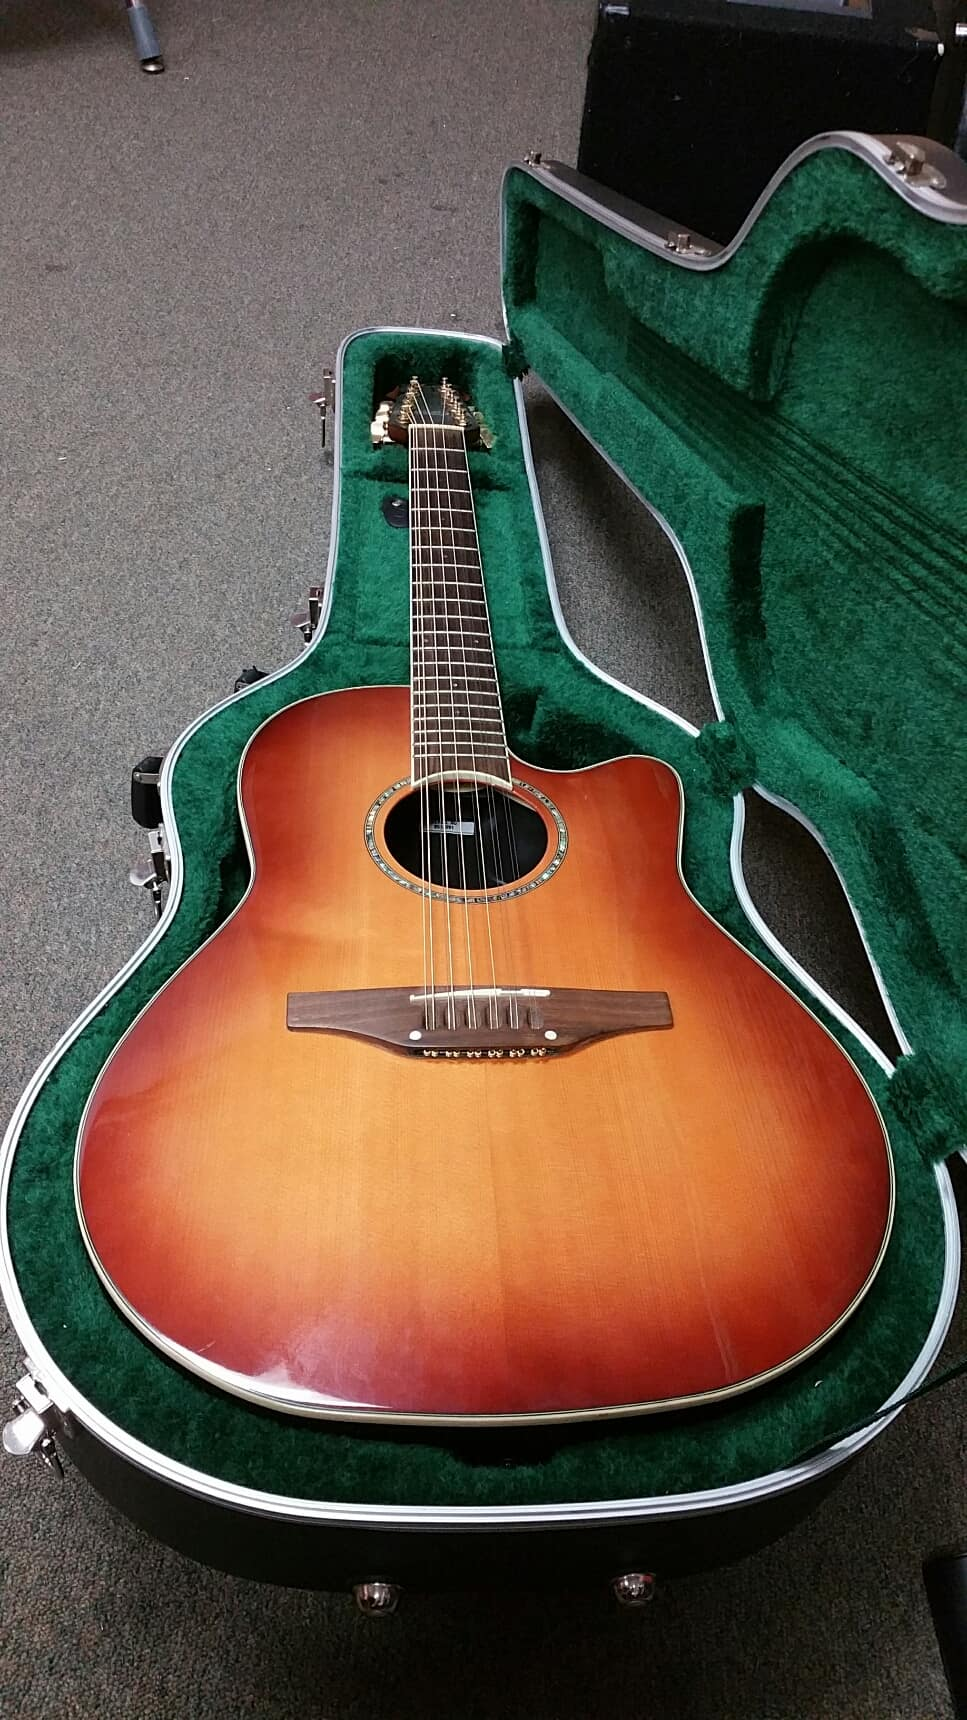 Amazon.com: ovation 12 string